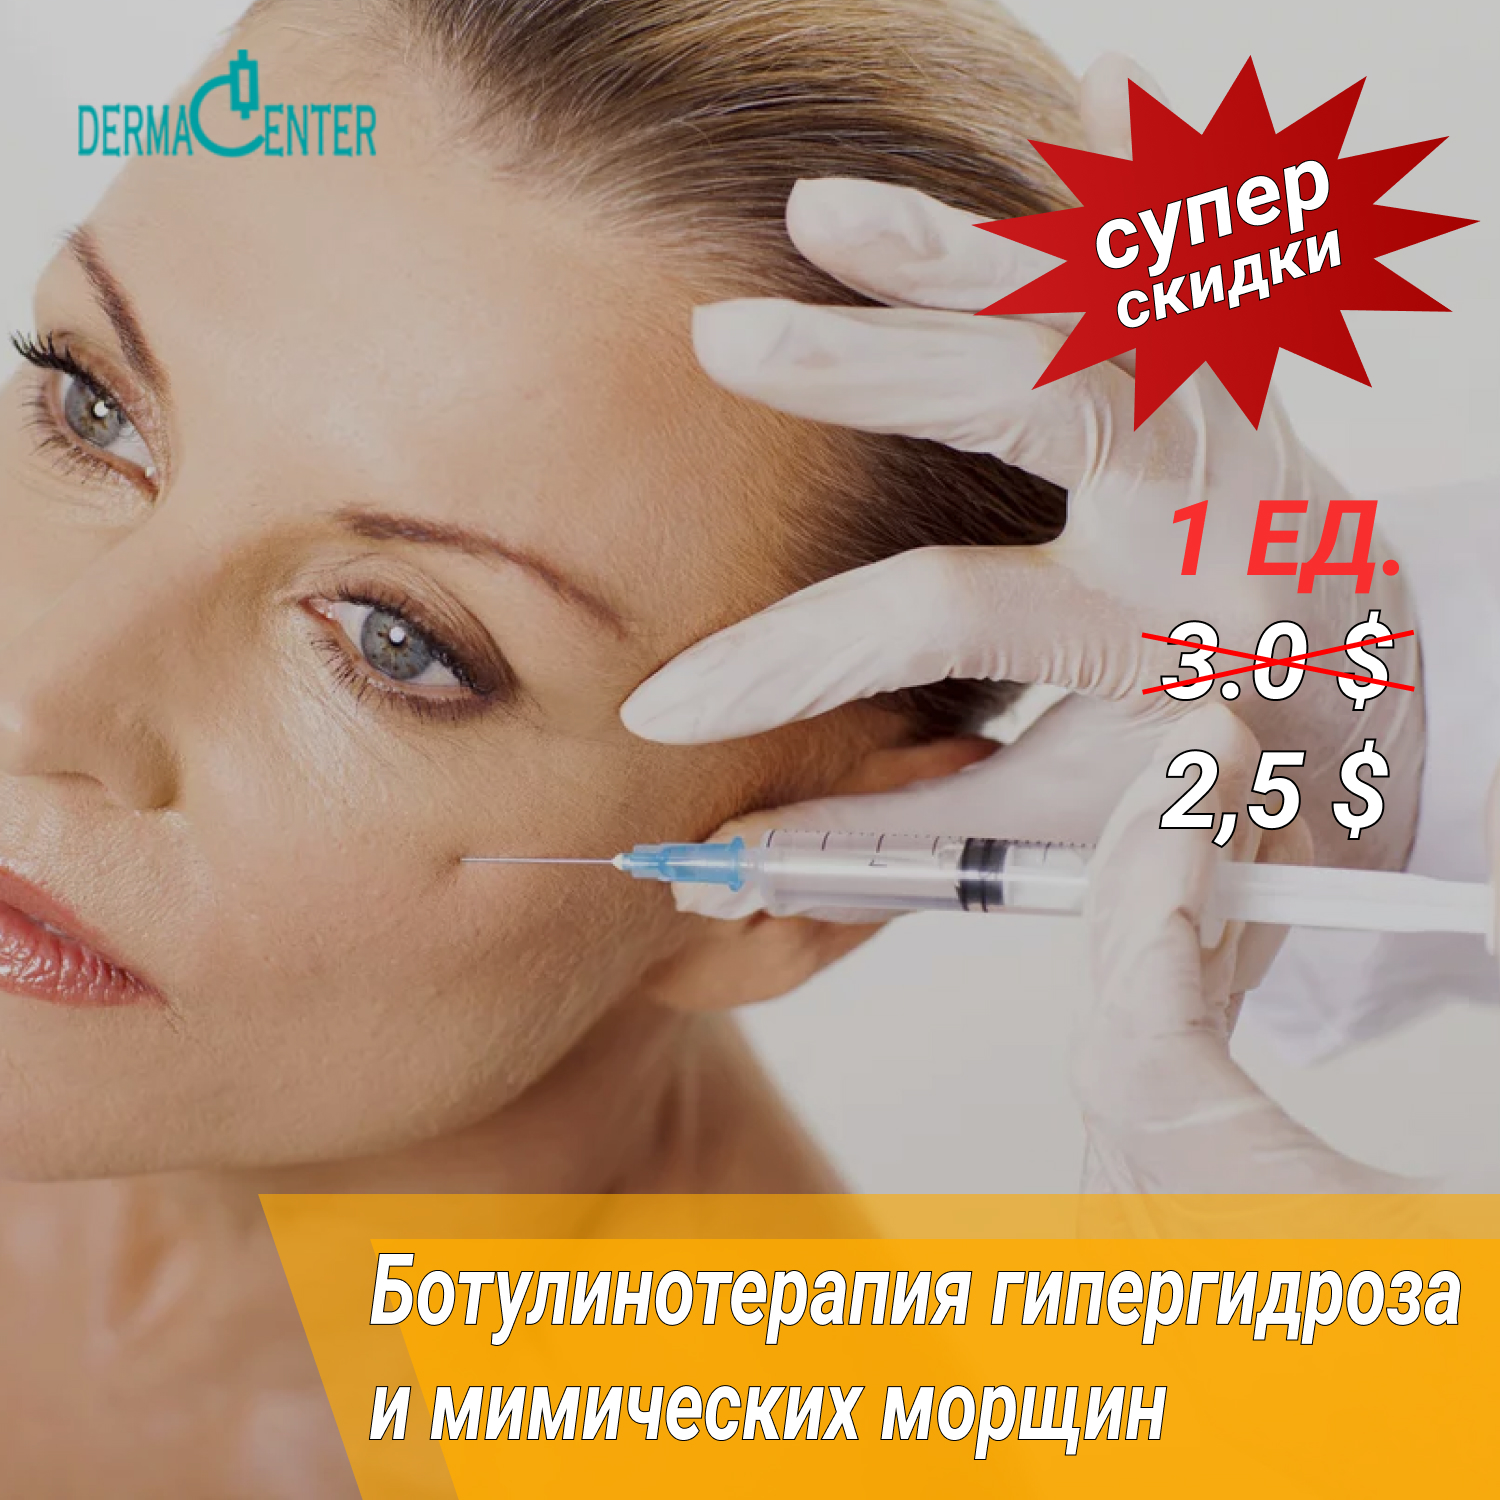 Botulinum therapy of hyperhidrosis and mimic wrinkles in Tashkent